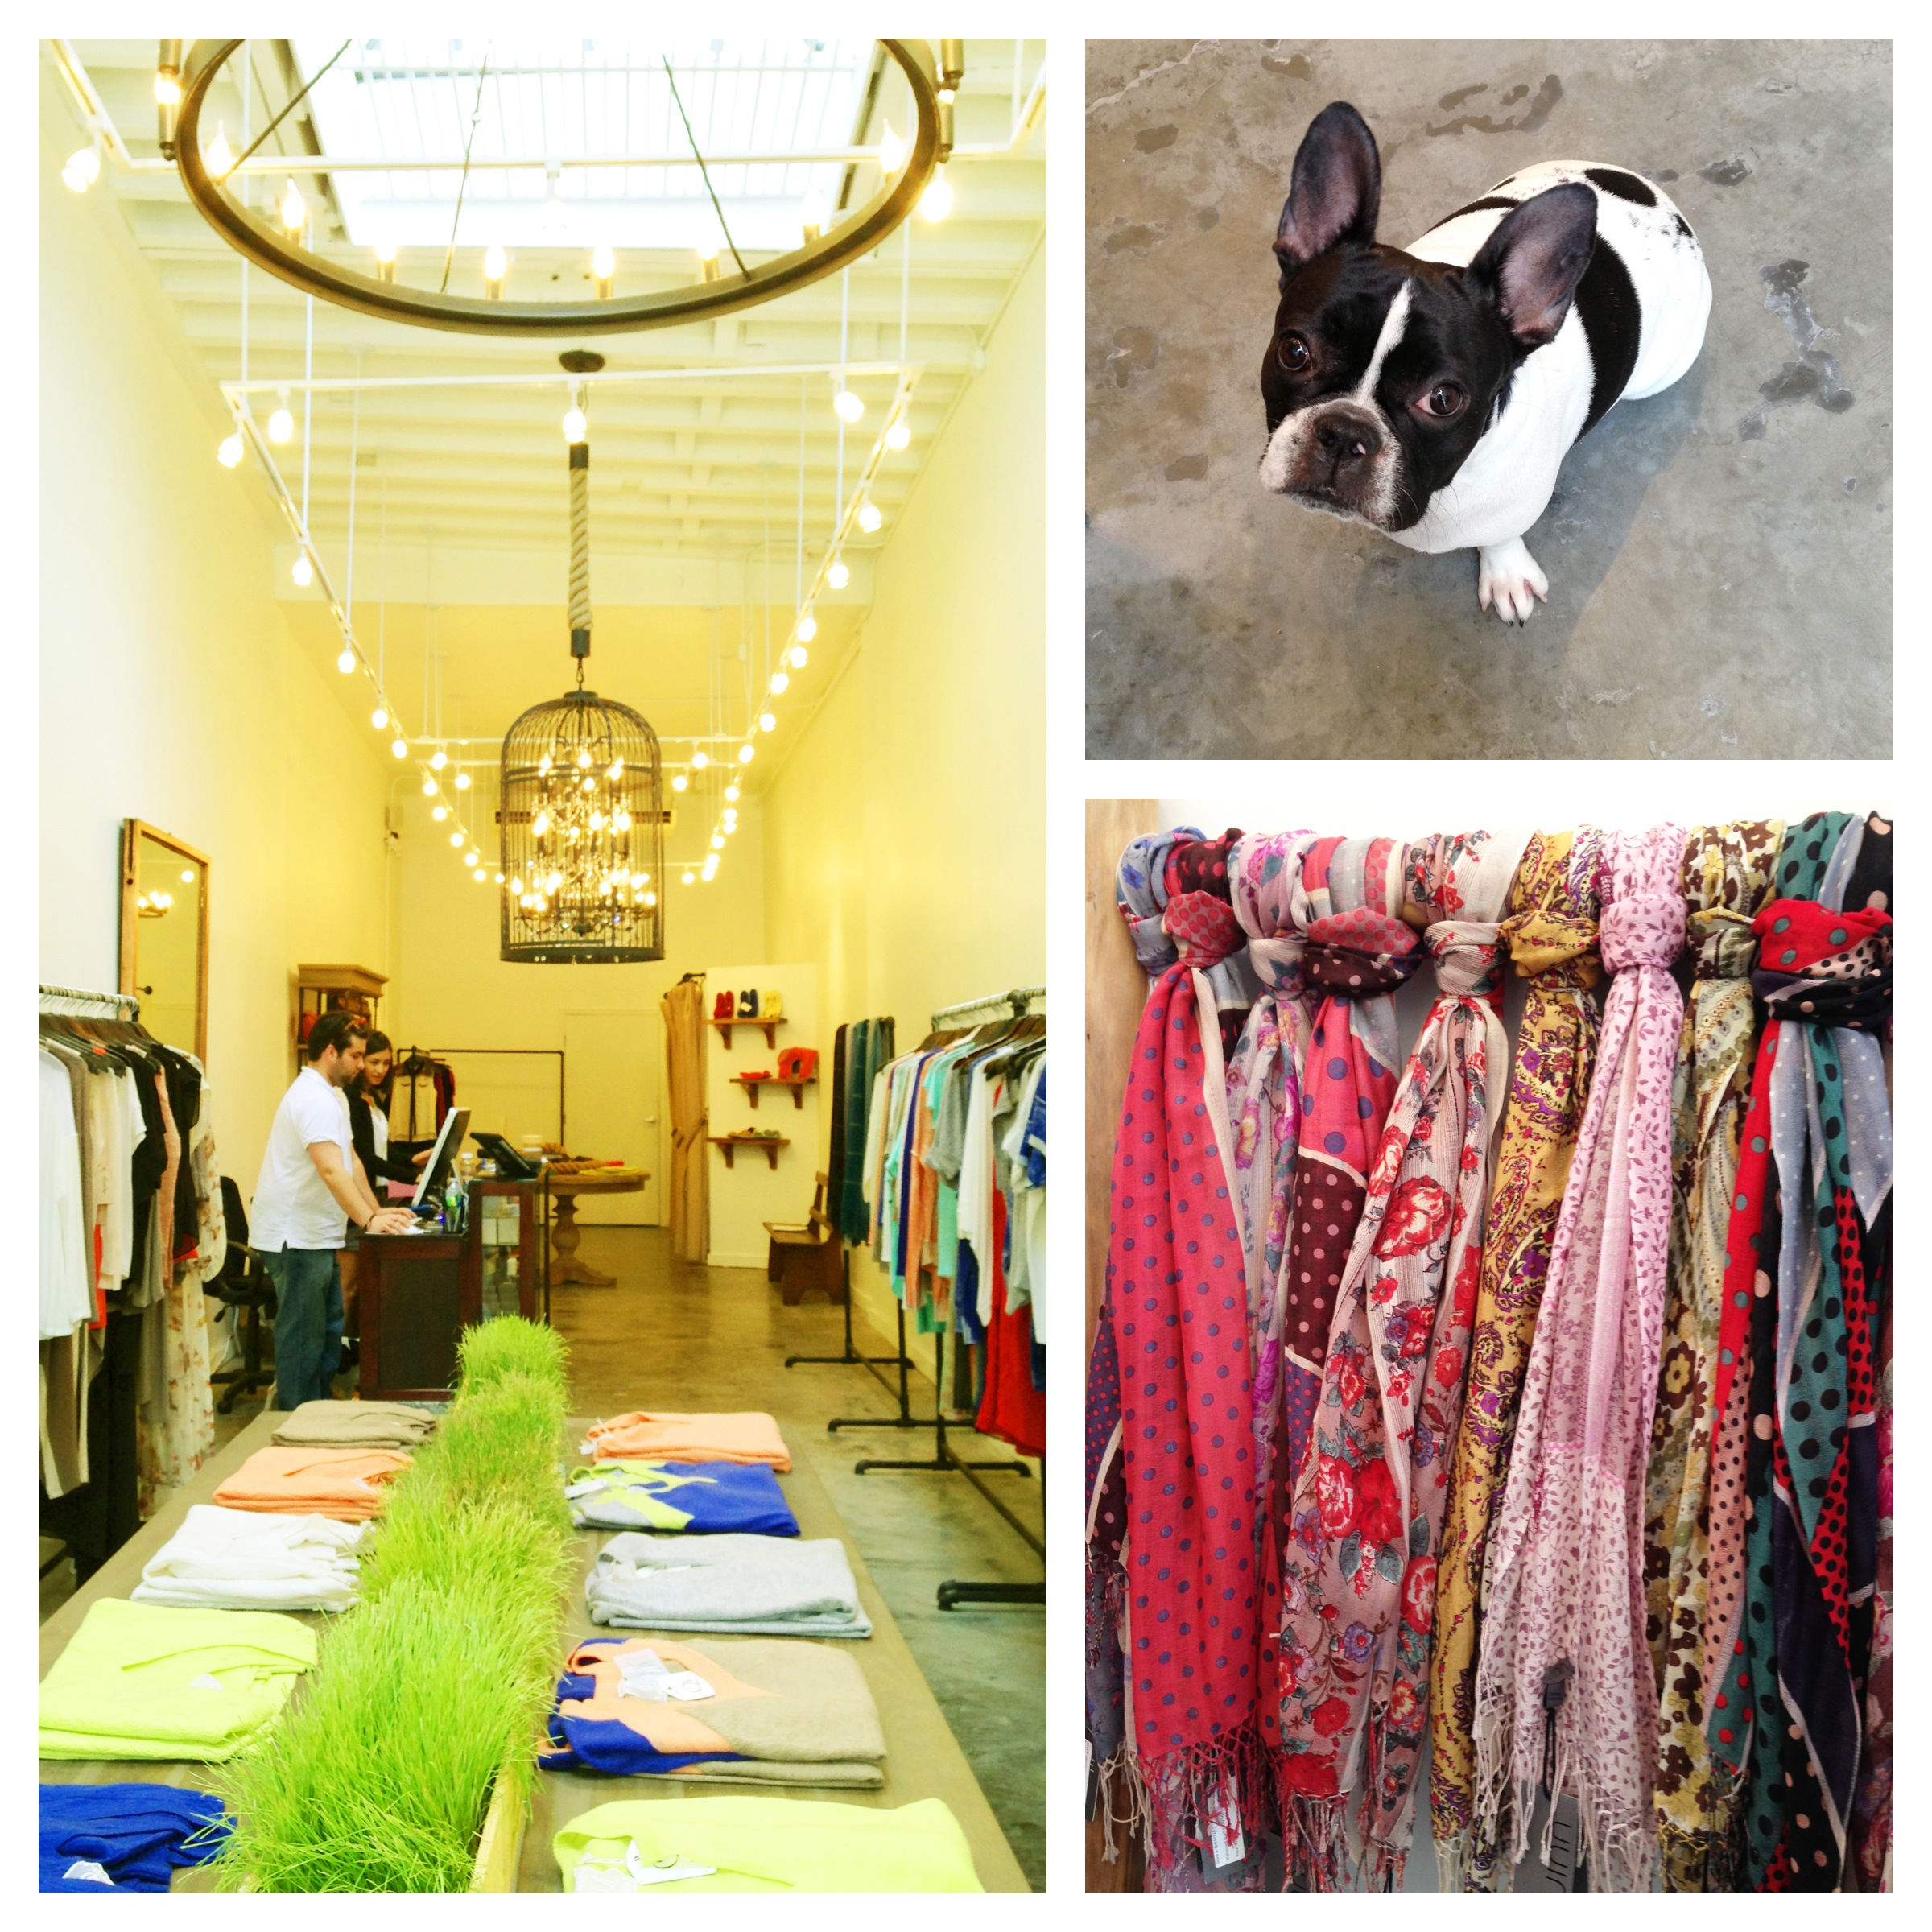 Quinn  181 Orchard Street New York, NY 10002  This beautiful clothing store, Quinn is only steps away from us. They have a wide range of luxury and modern styles for women which you will enjoy to choose from. A friendly french bulldog will surely make your visit more memorable one!